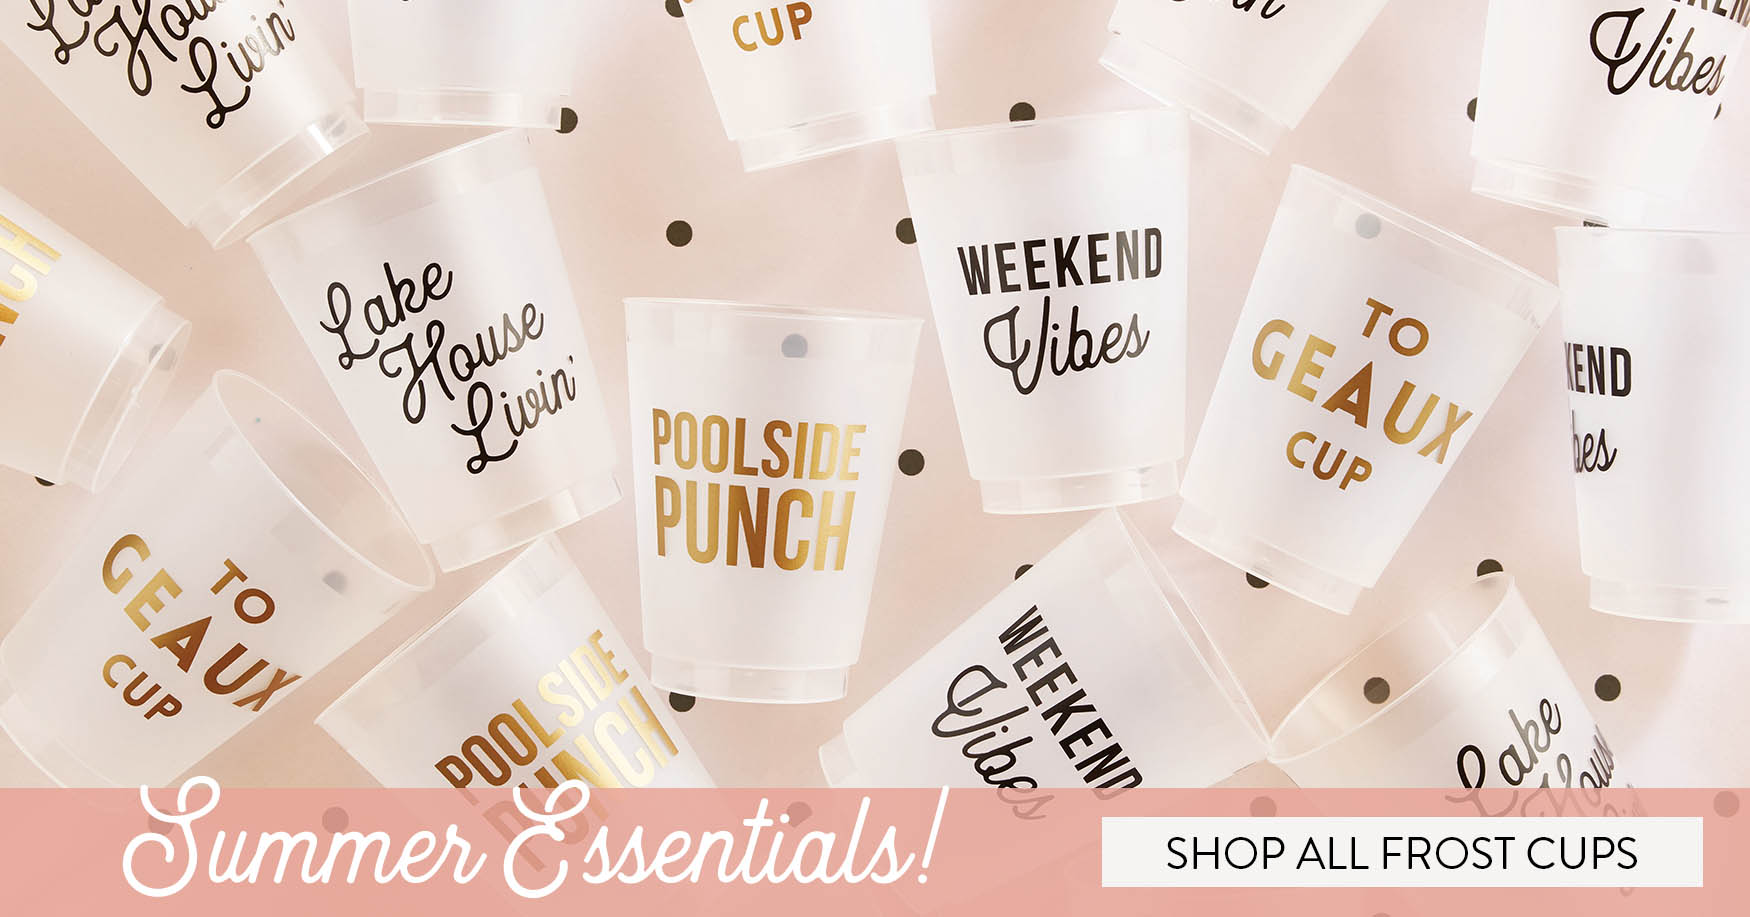 Summer Essentials - Shop all frost cups!